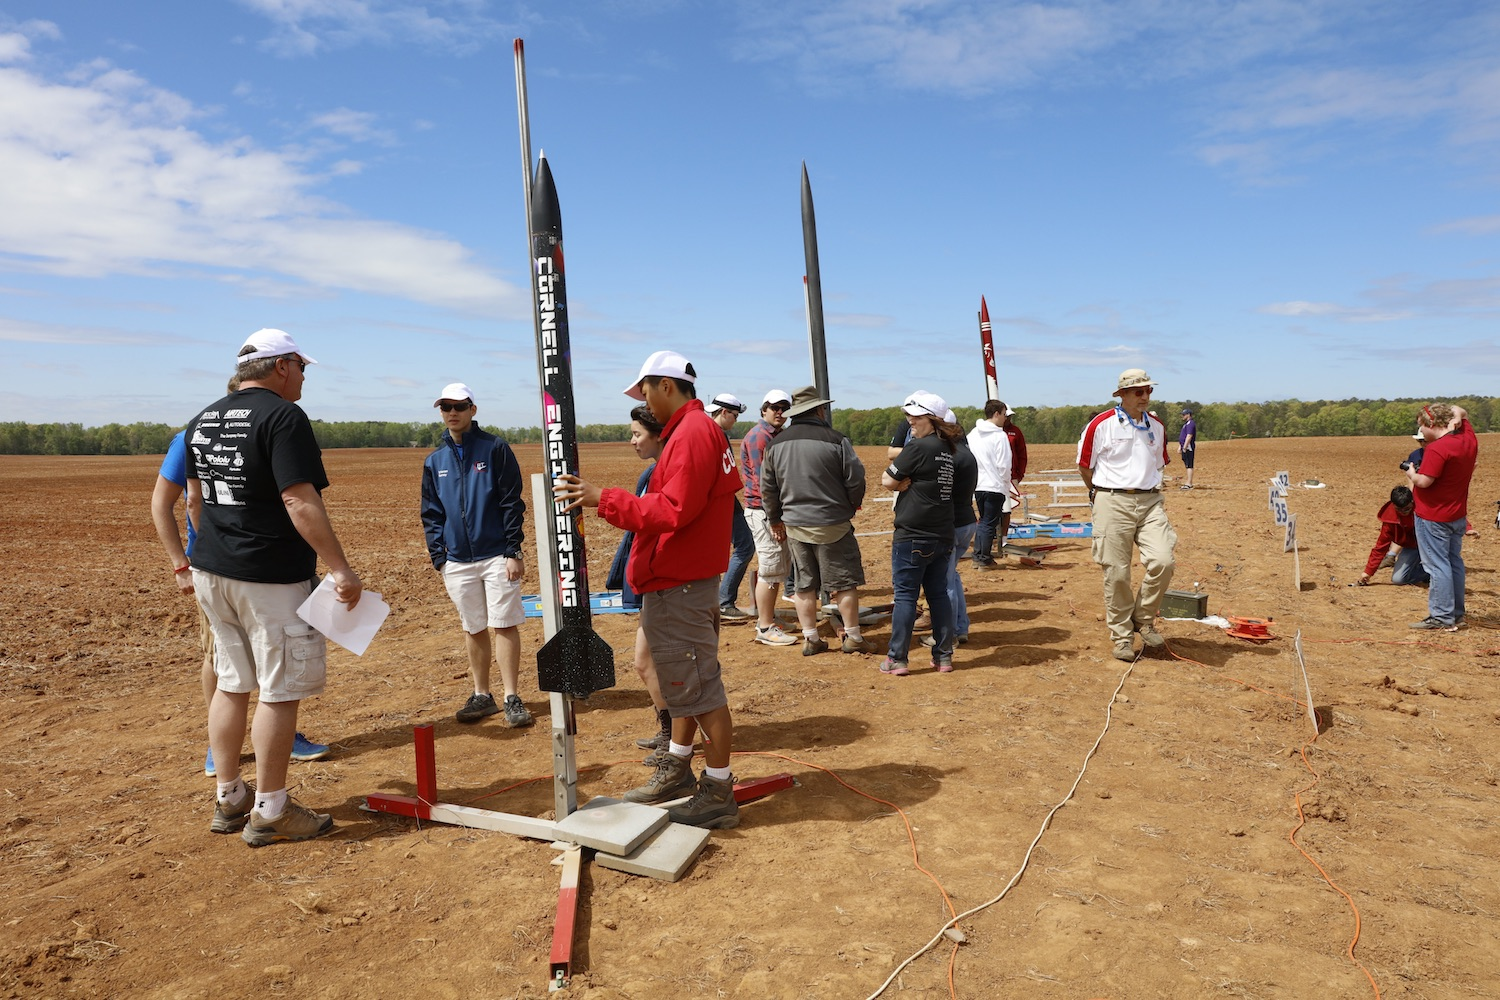 Preparations under way at the 2015-2016 Nasa Student Launch competition. This year's field will include sixty teams from universities and secondary schools in twenty-three states. Credit:  Nasa/MSFC/Emmett Given